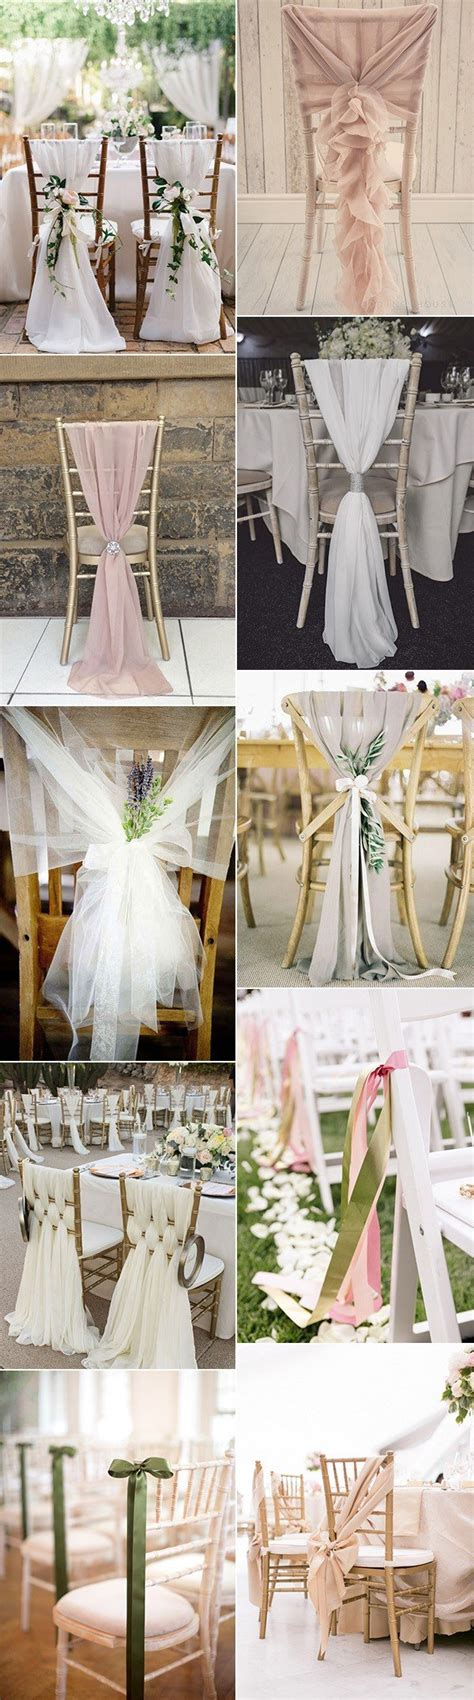 diy wedding ceremony chair decorations 28 awesome wedding chair decoration ideas for ceremony and reception oh best day